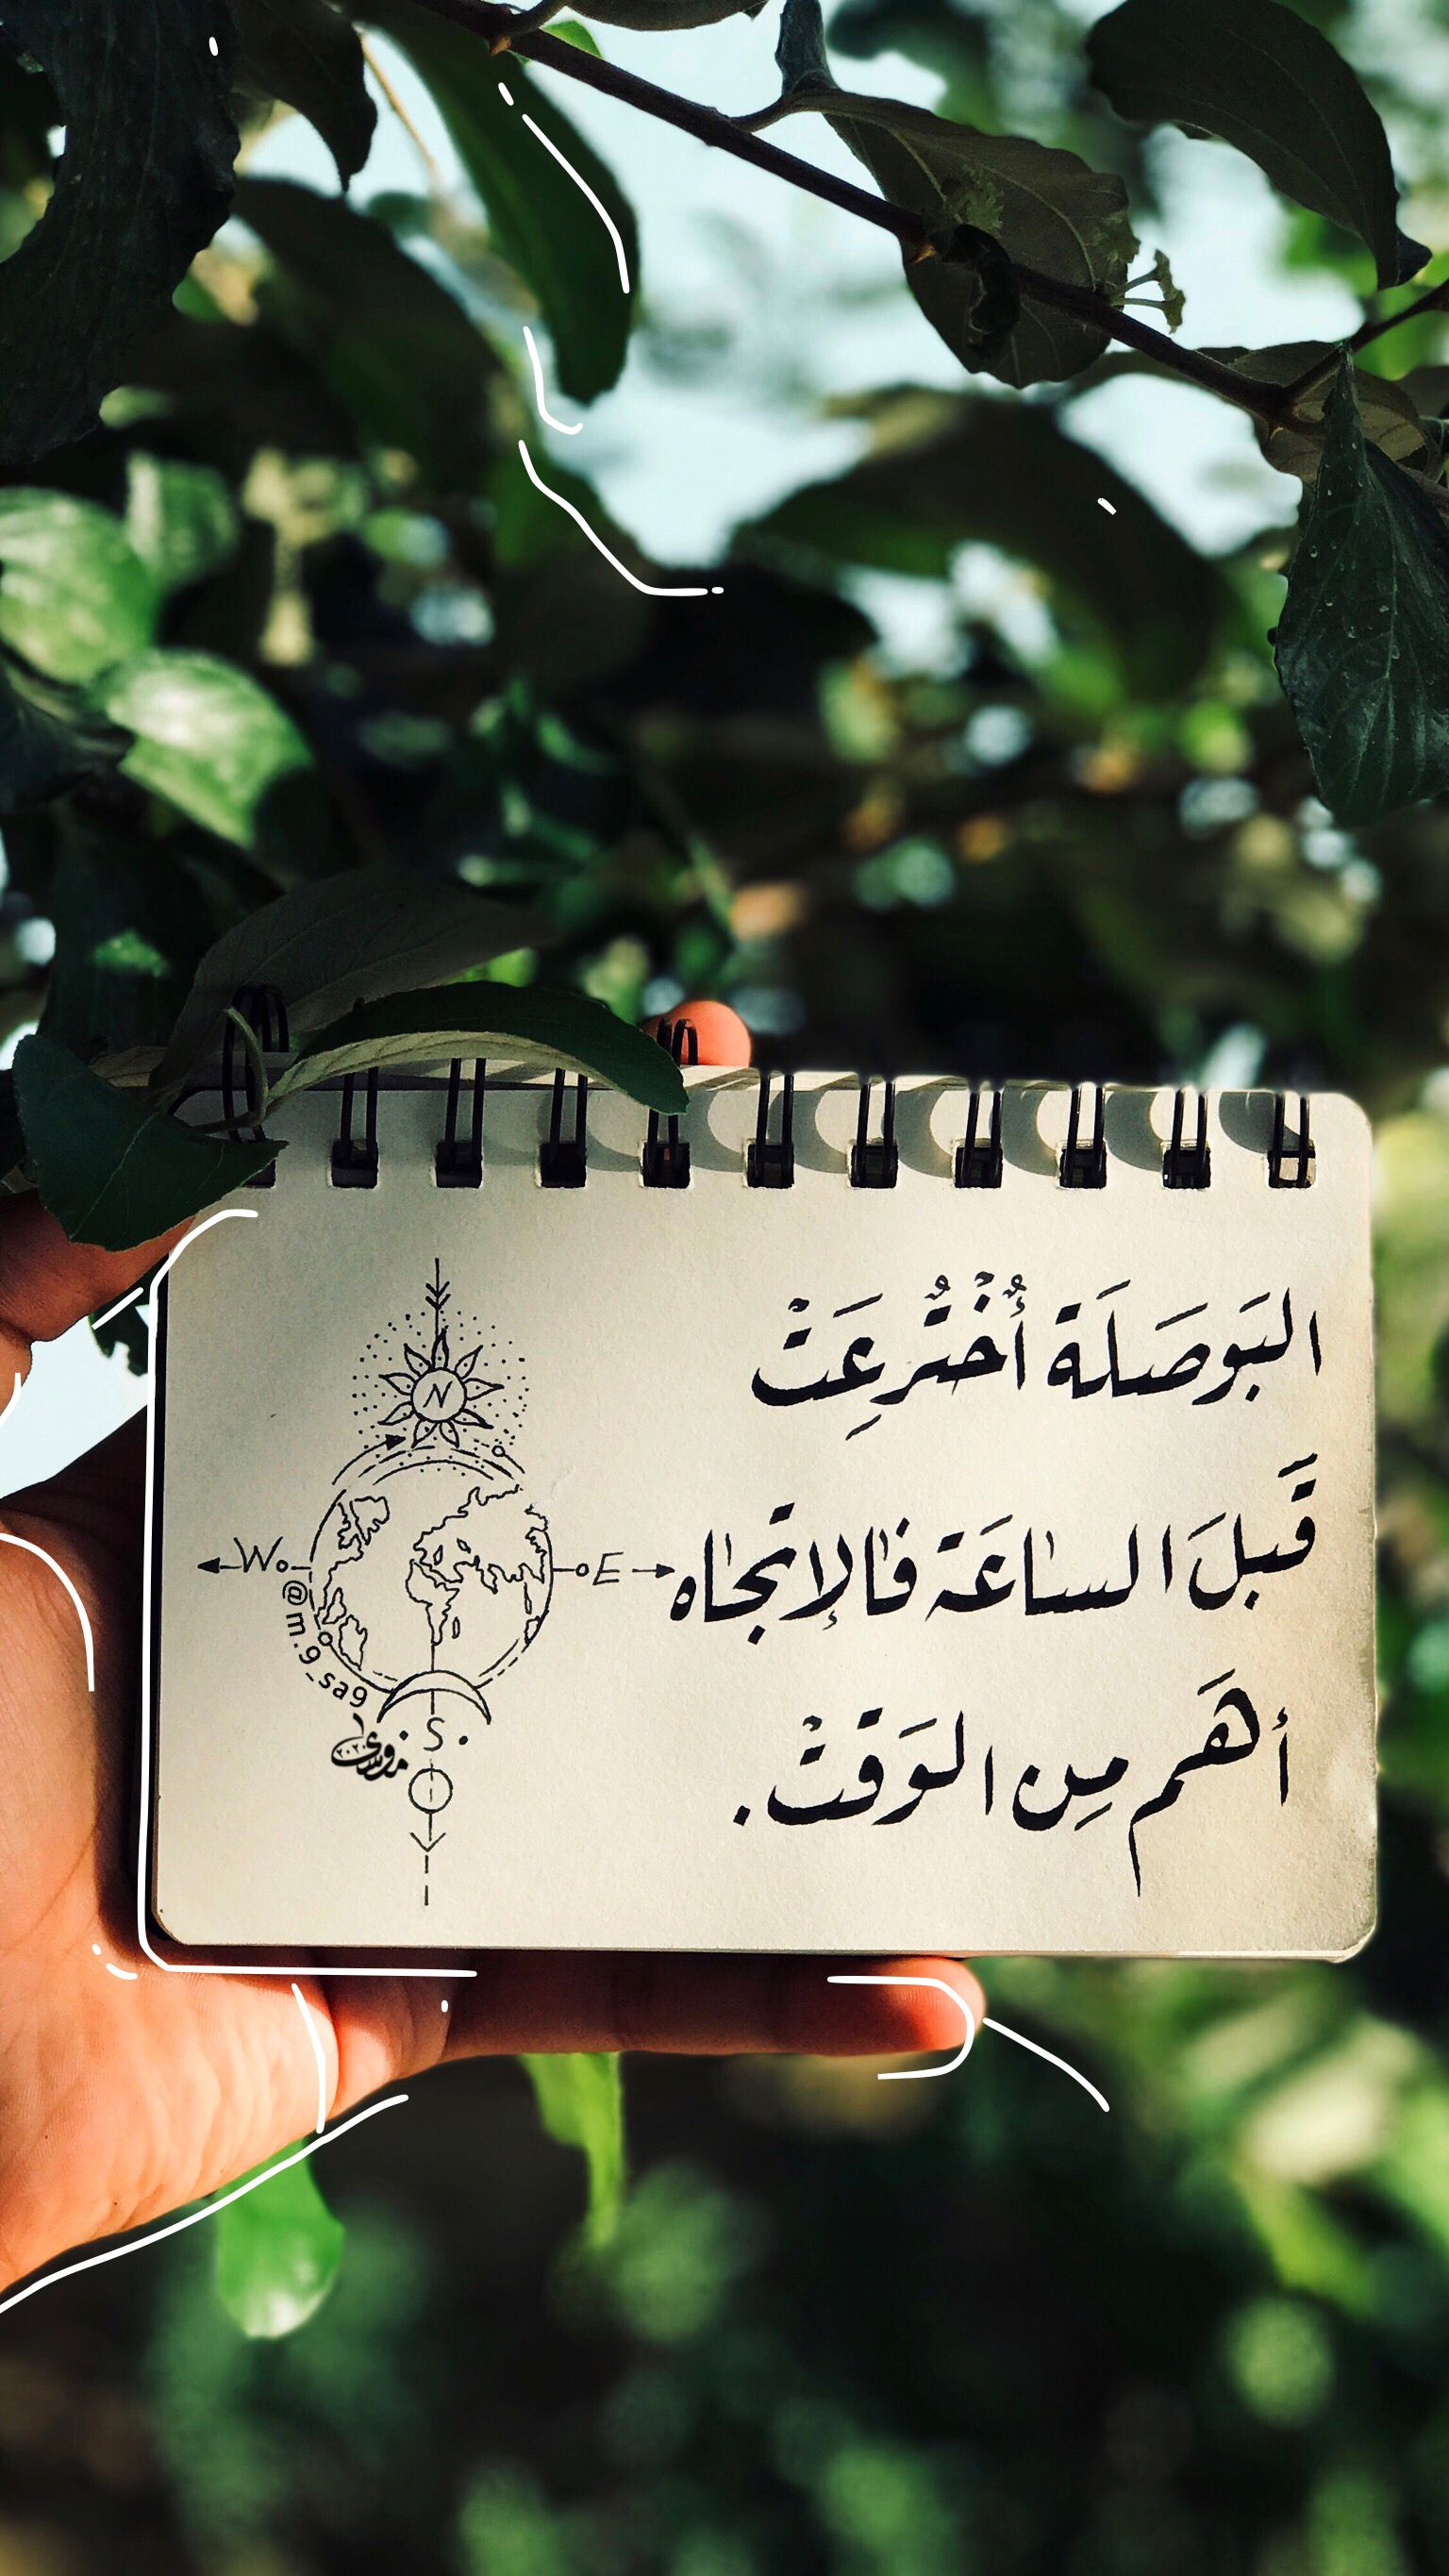 Mosa D M 9 Sa9 Instagram Photos And Videos Blogging Quotes Words Quotes Arabic Love Quotes